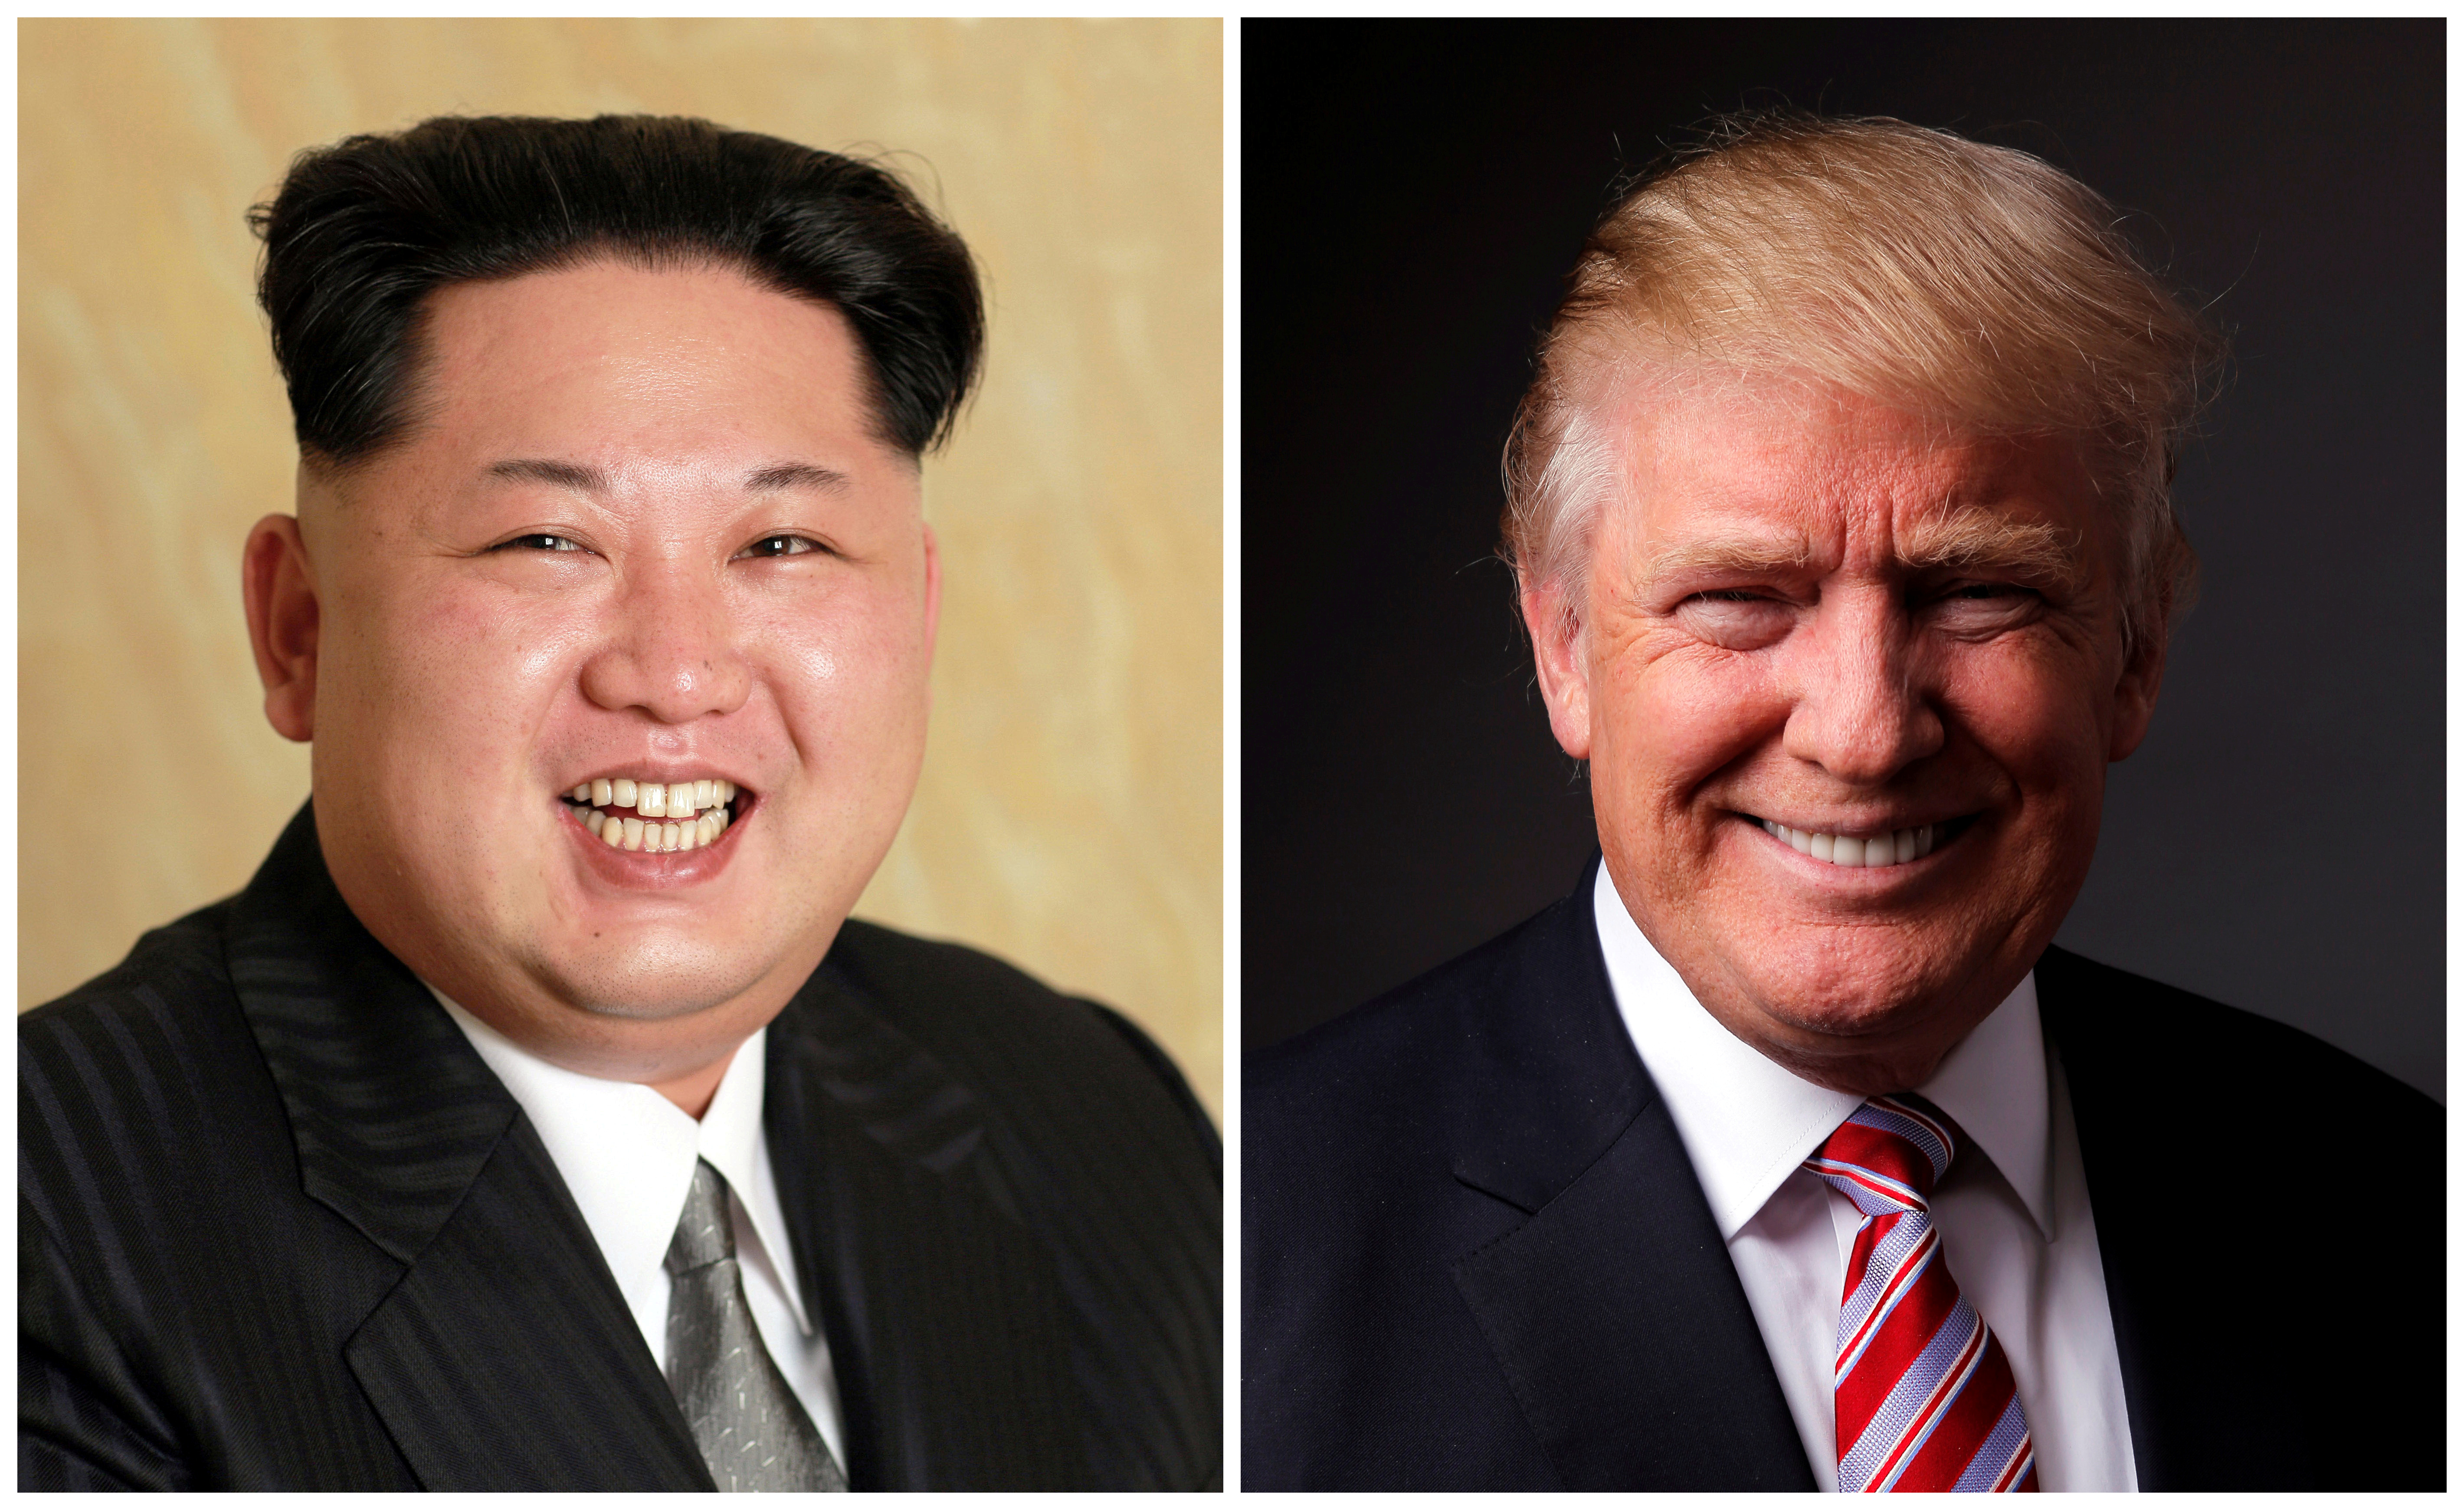 A combination photo shows a Korean Central News Agency (KCNA) handout of North Korean leader Kim Jong Un released on May 10, 2016, and Republican U.S. presidential candidate Donald Trump posing for a photo after an interview with Reuters in his office in Trump Tower, in the Manhattan borough of New York City, U.S., May 17, 2016. REUTERS/KCNA handout via Reuters/File Photo & REUTERS/Lucas Jackson/File PhotoATTENTION EDITORS - THE KCNA IMAGE WAS PROVIDED BY A THIRD PARTY. EDITORIAL USE ONLY. REUTERS IS UNABLE TO INDEPENDENTLY VERIFY THIS IMAGE. NO THIRD PARTY SALES. NOT FOR USE BY REUTERS THIRD PARTY DISTRIBUTORS. SOUTH KOREA OUT. NO COMMERCIAL OR EDITORIAL SALES IN SOUTH KOREA. TPX IMAGES OF THE DAY - S1BETEQQBGAA